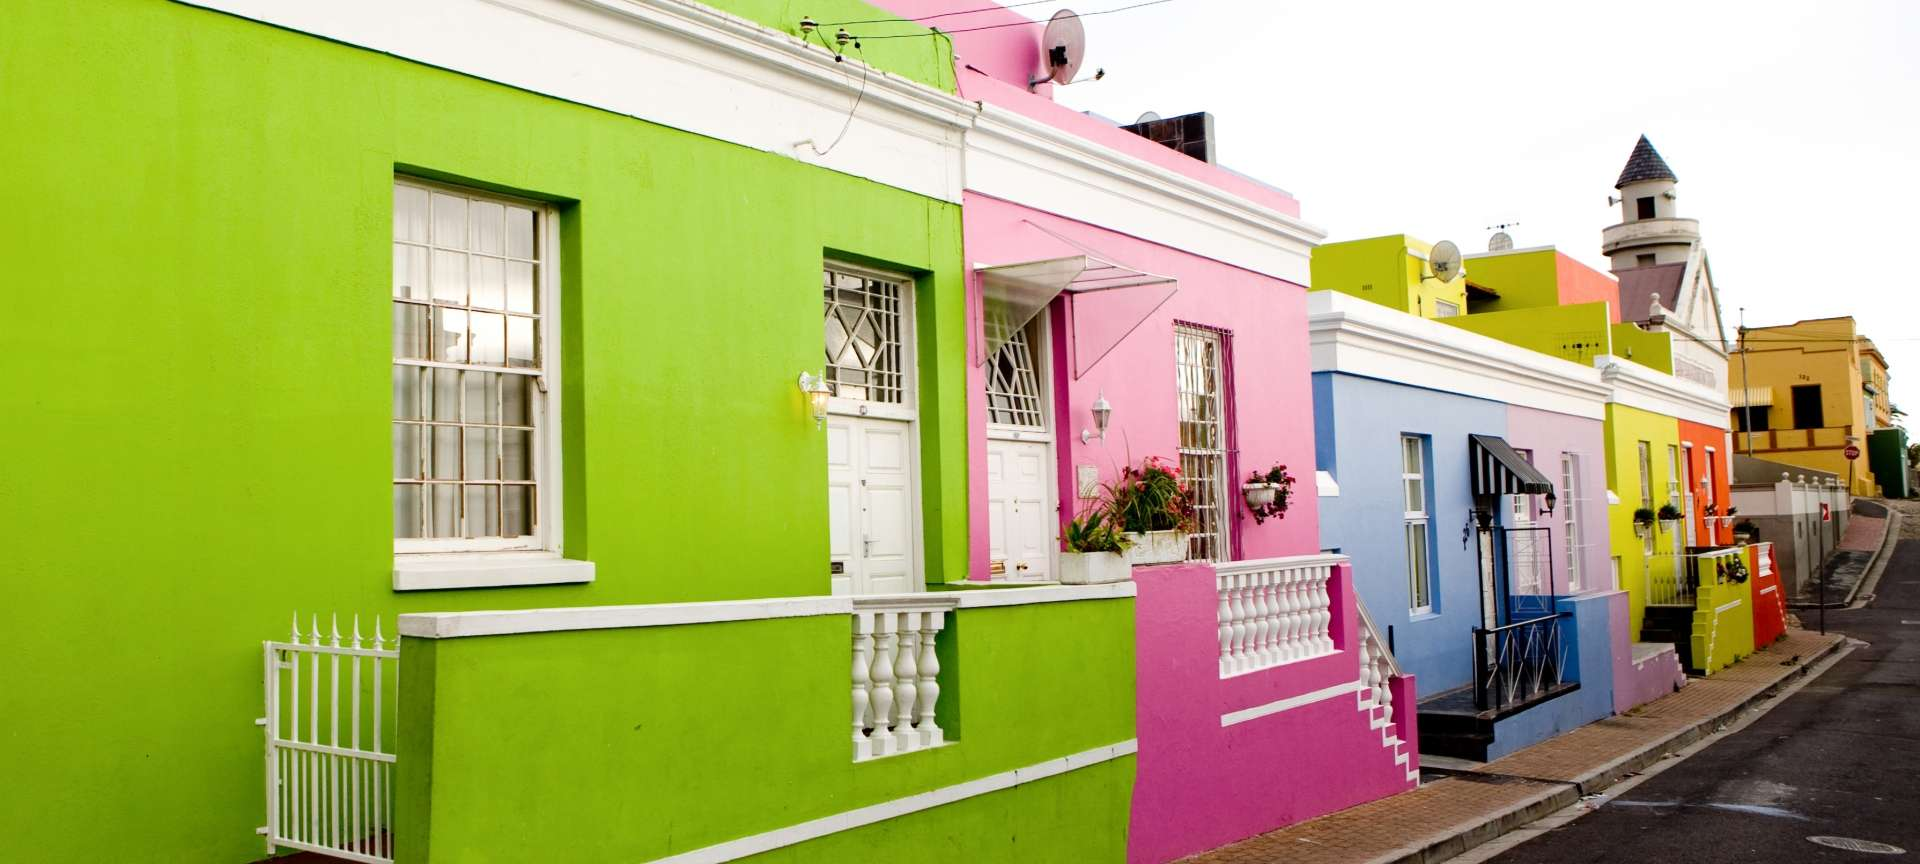 The cobbled streets and colourful houses of Bo-Kaap are a popular photographic destination.